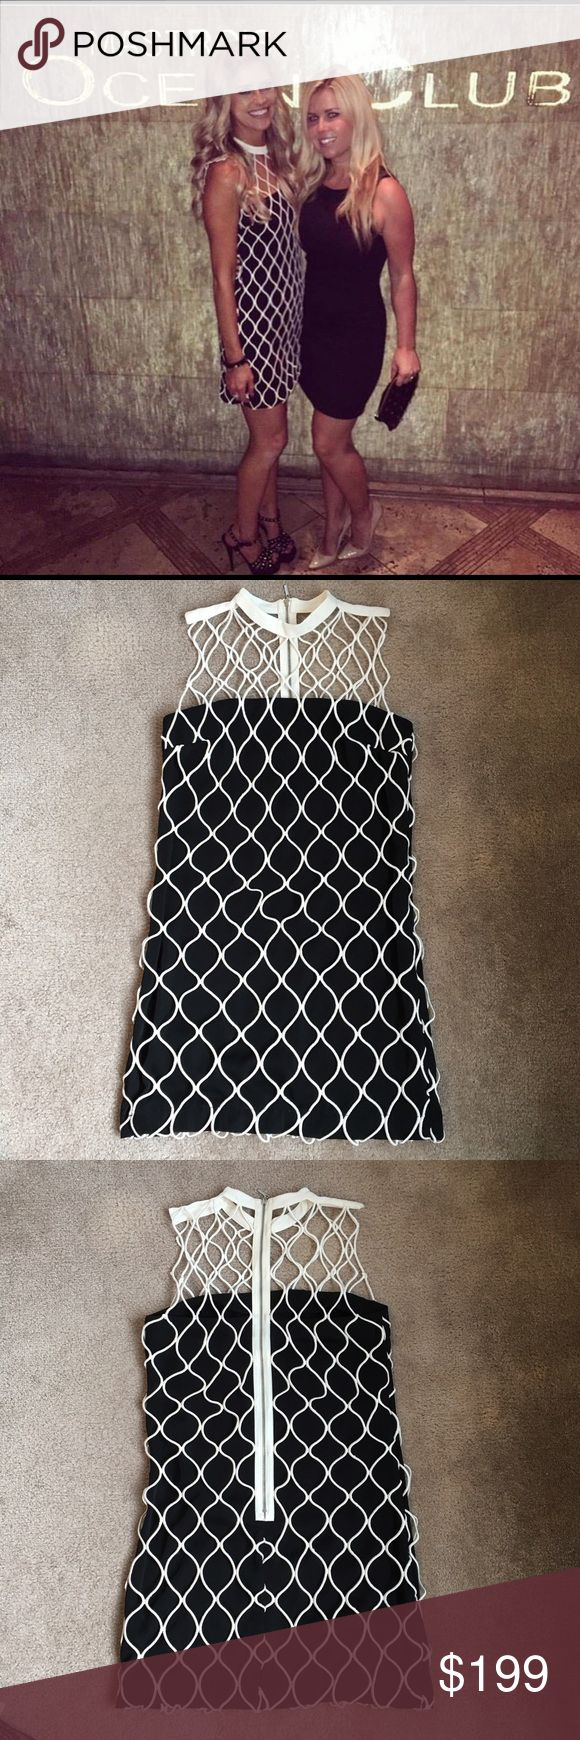 Topshop Cage Dress as seen on Christina El Moussa Topshop Cage Dress as seen on Christina El Moussa . No tags but is a US size 4. Topshop Dresses